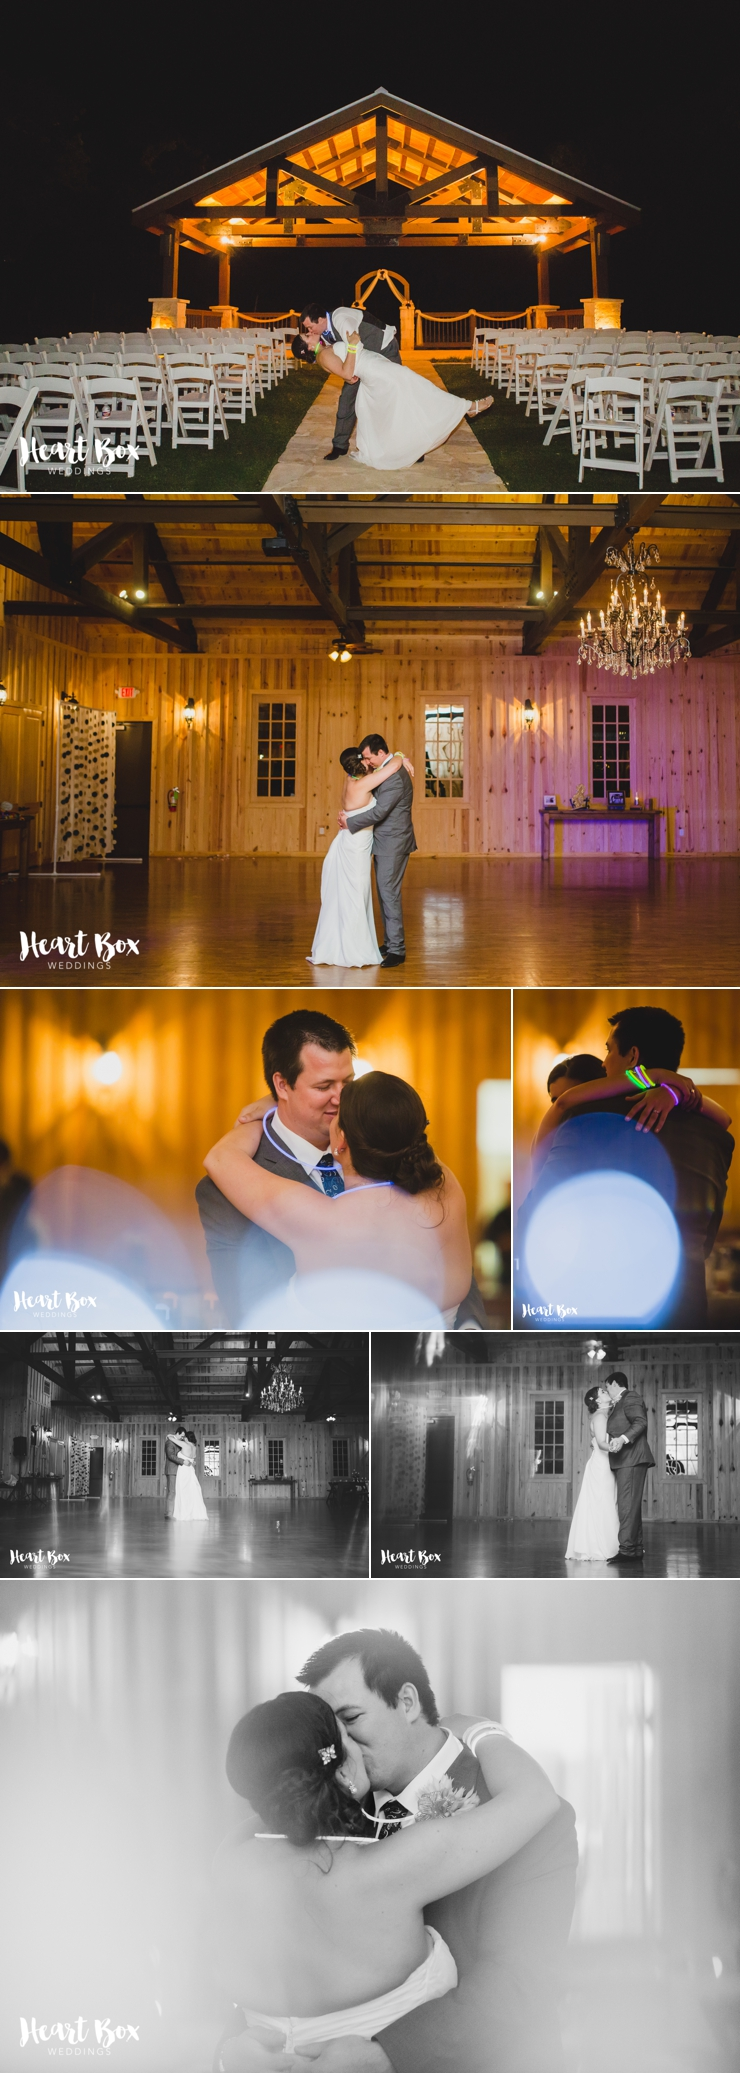 Waggoner Wedding Collages 21.jpg